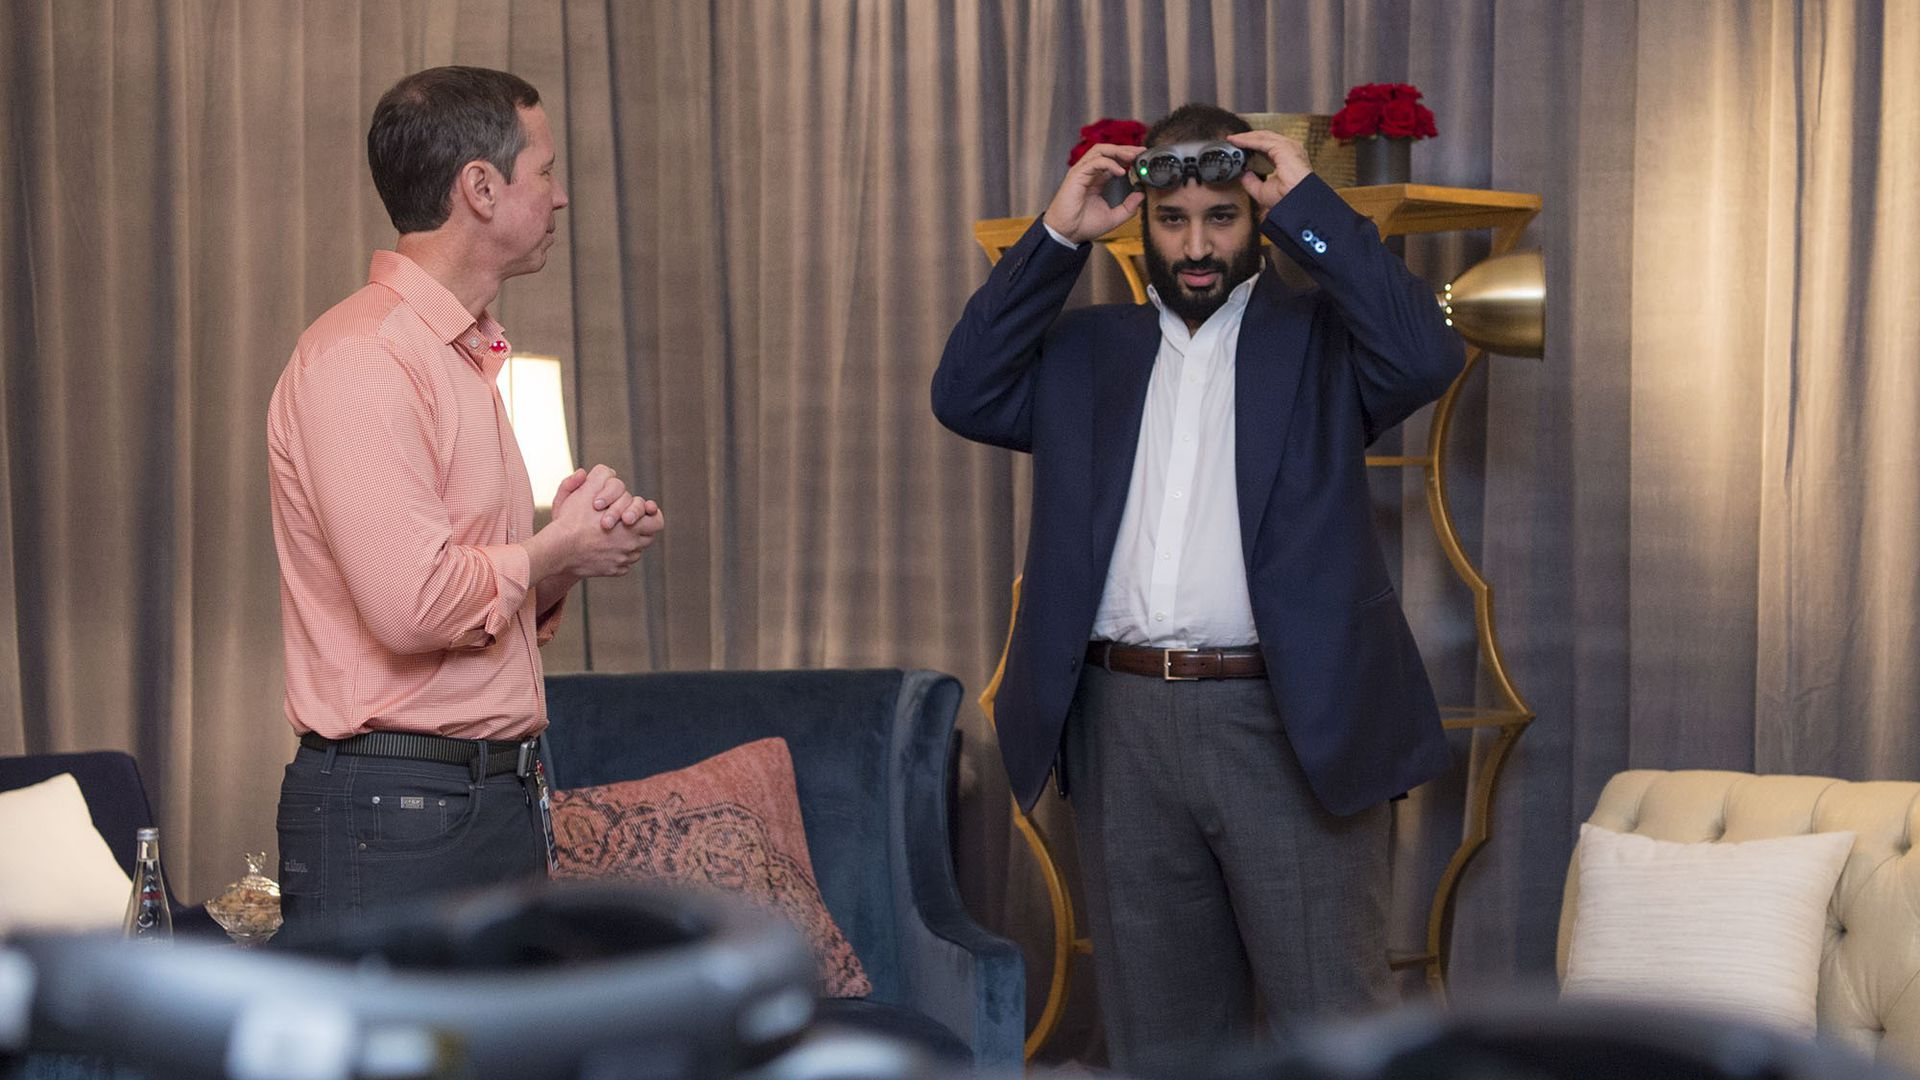 Saudi Arabian Crown Prince Mohammad bin Salman tries out a Magic Leap headset.